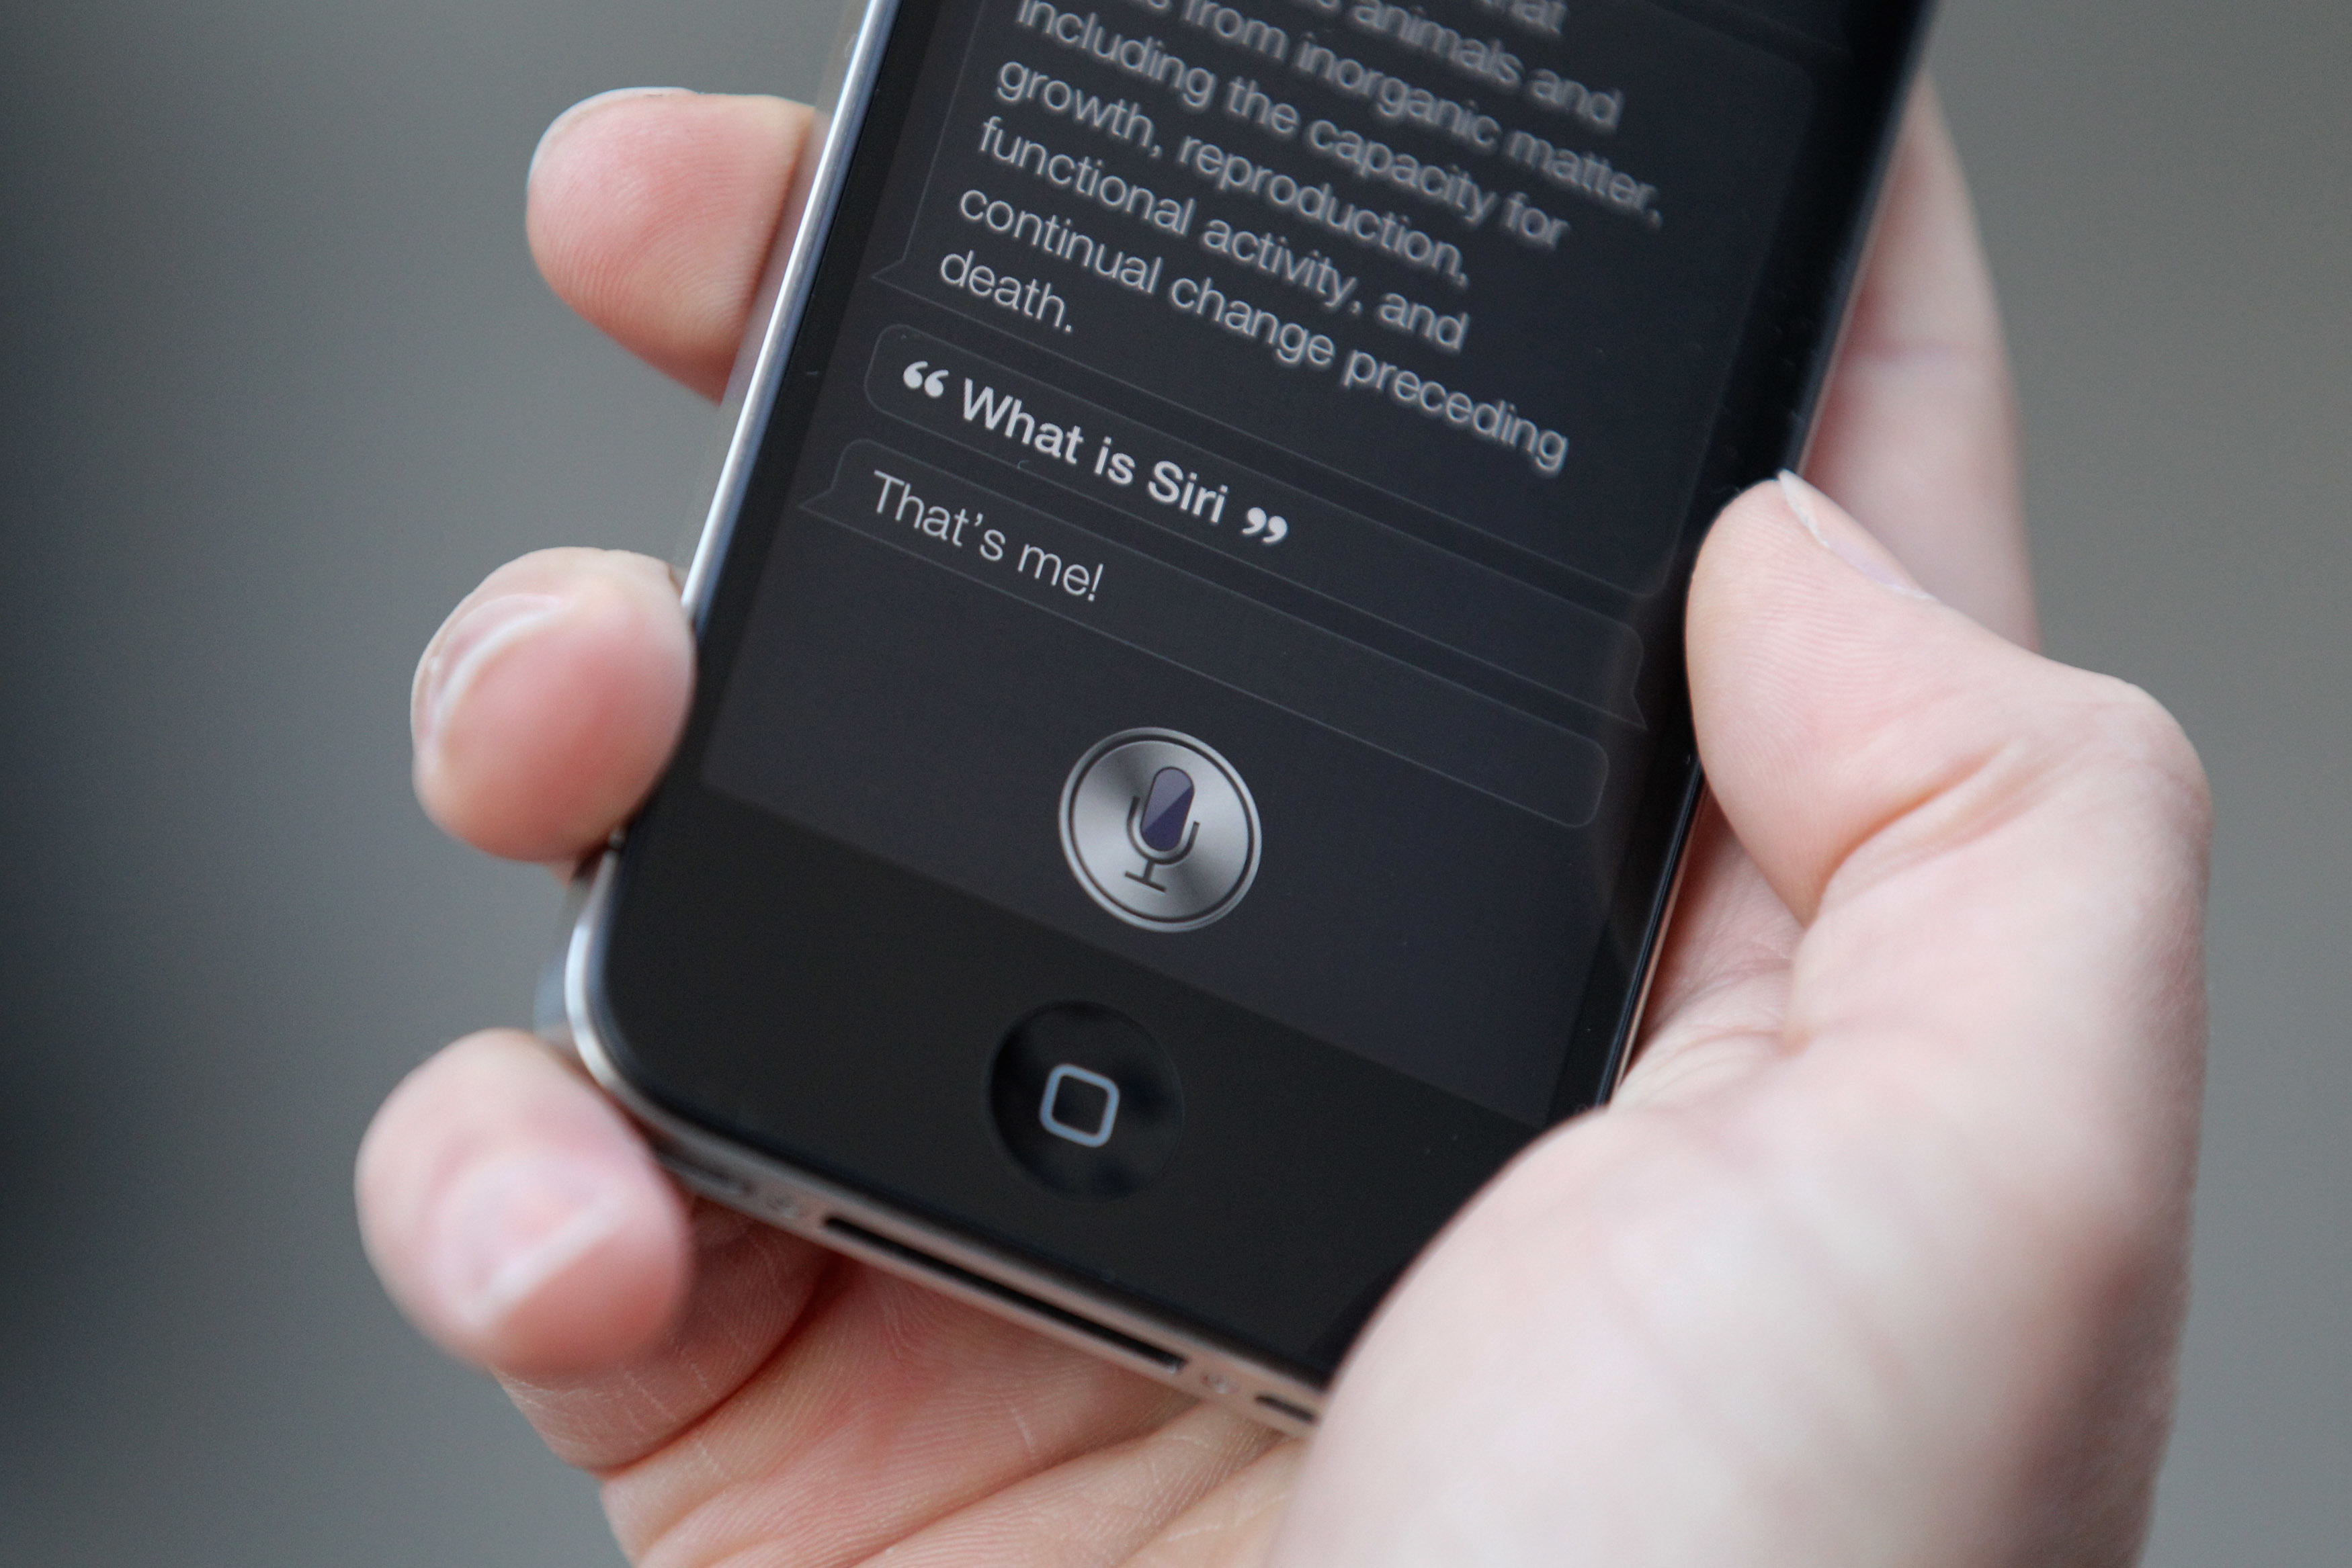 Siri, Apple's personal assistant, debuted on the iPhone 4S in 2011.